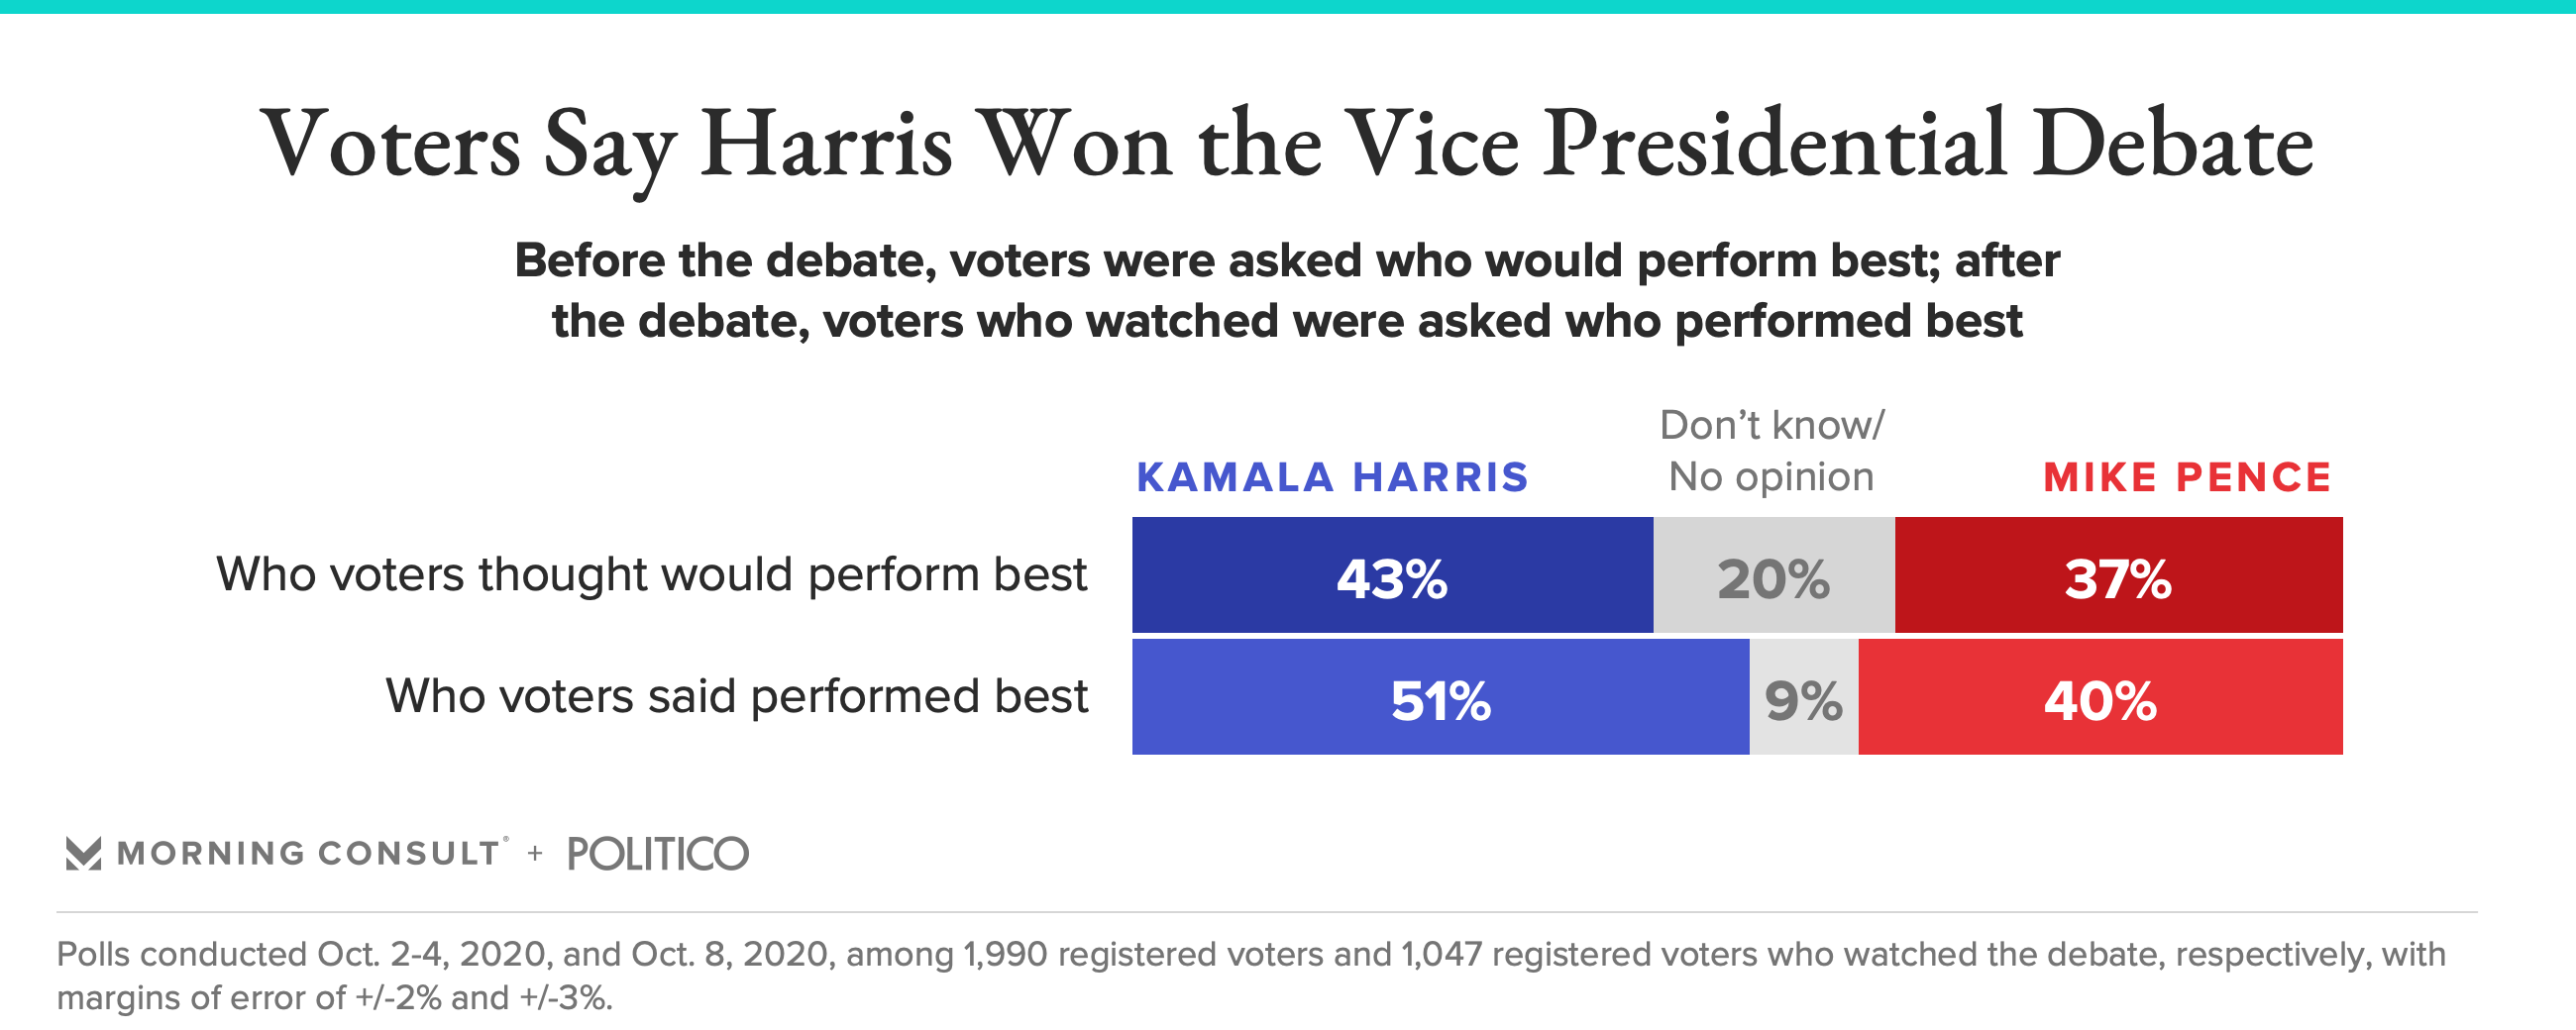 Voters Say Kamala Harris Won The Vice Presidential Debate